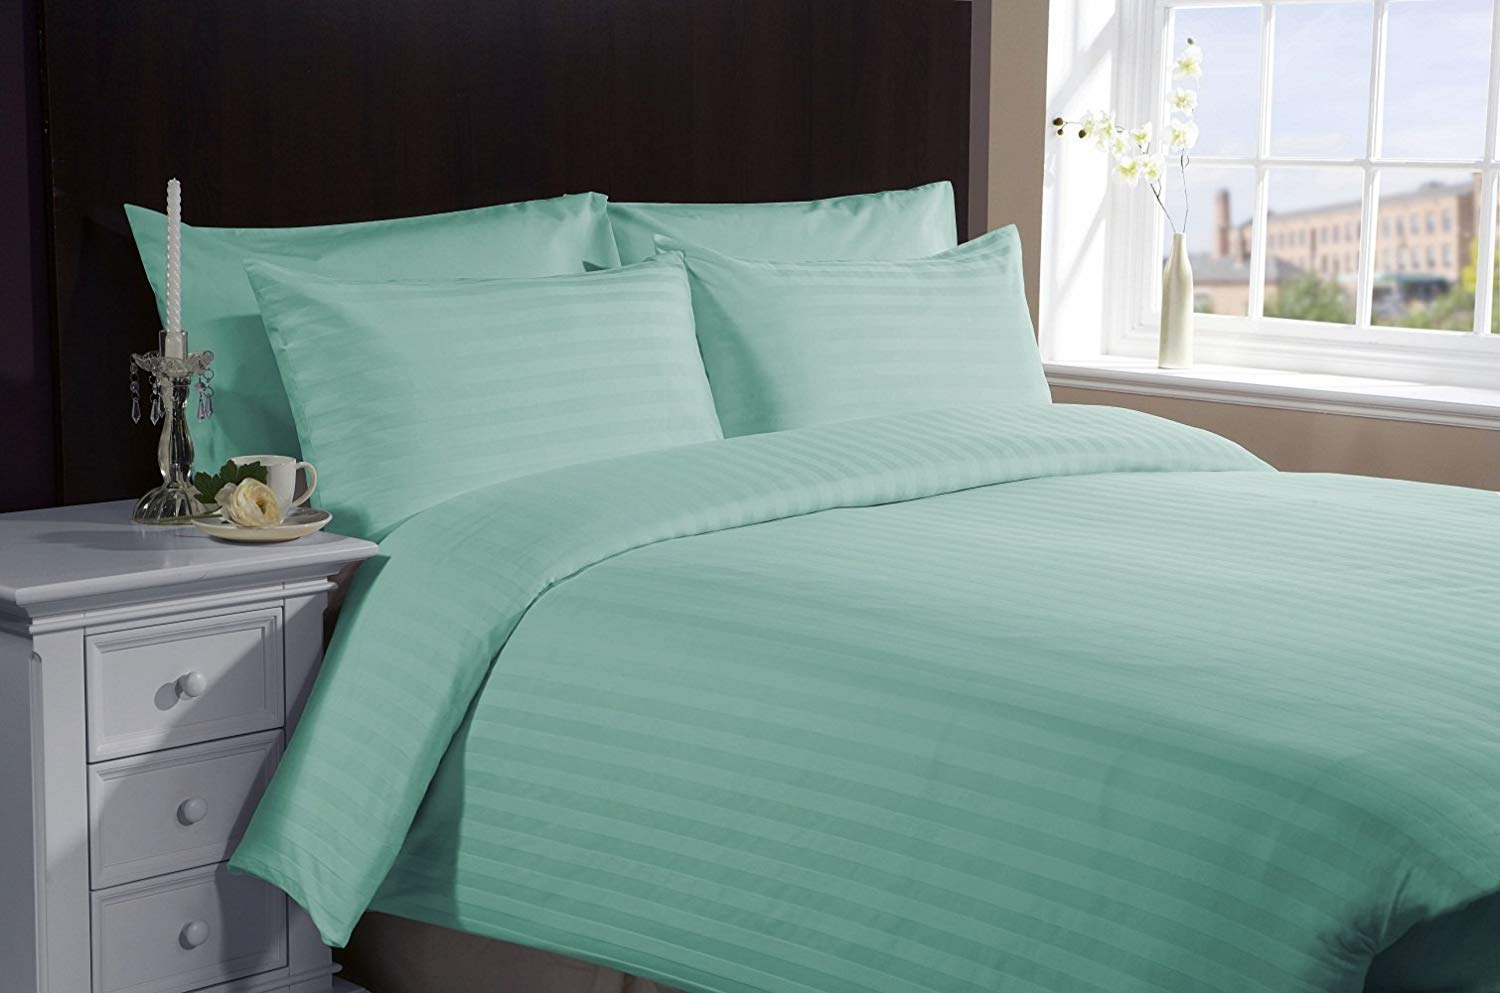 Both Pattern Solid/Stripe 1-Piece- Fitted- Sheet with 20-25 inches Extra Fit Deep Pocket Hotel Finish Adjustable Room 400 Thread Count 100% Pima Cotton (King , Stripe ,Aqua Blue).